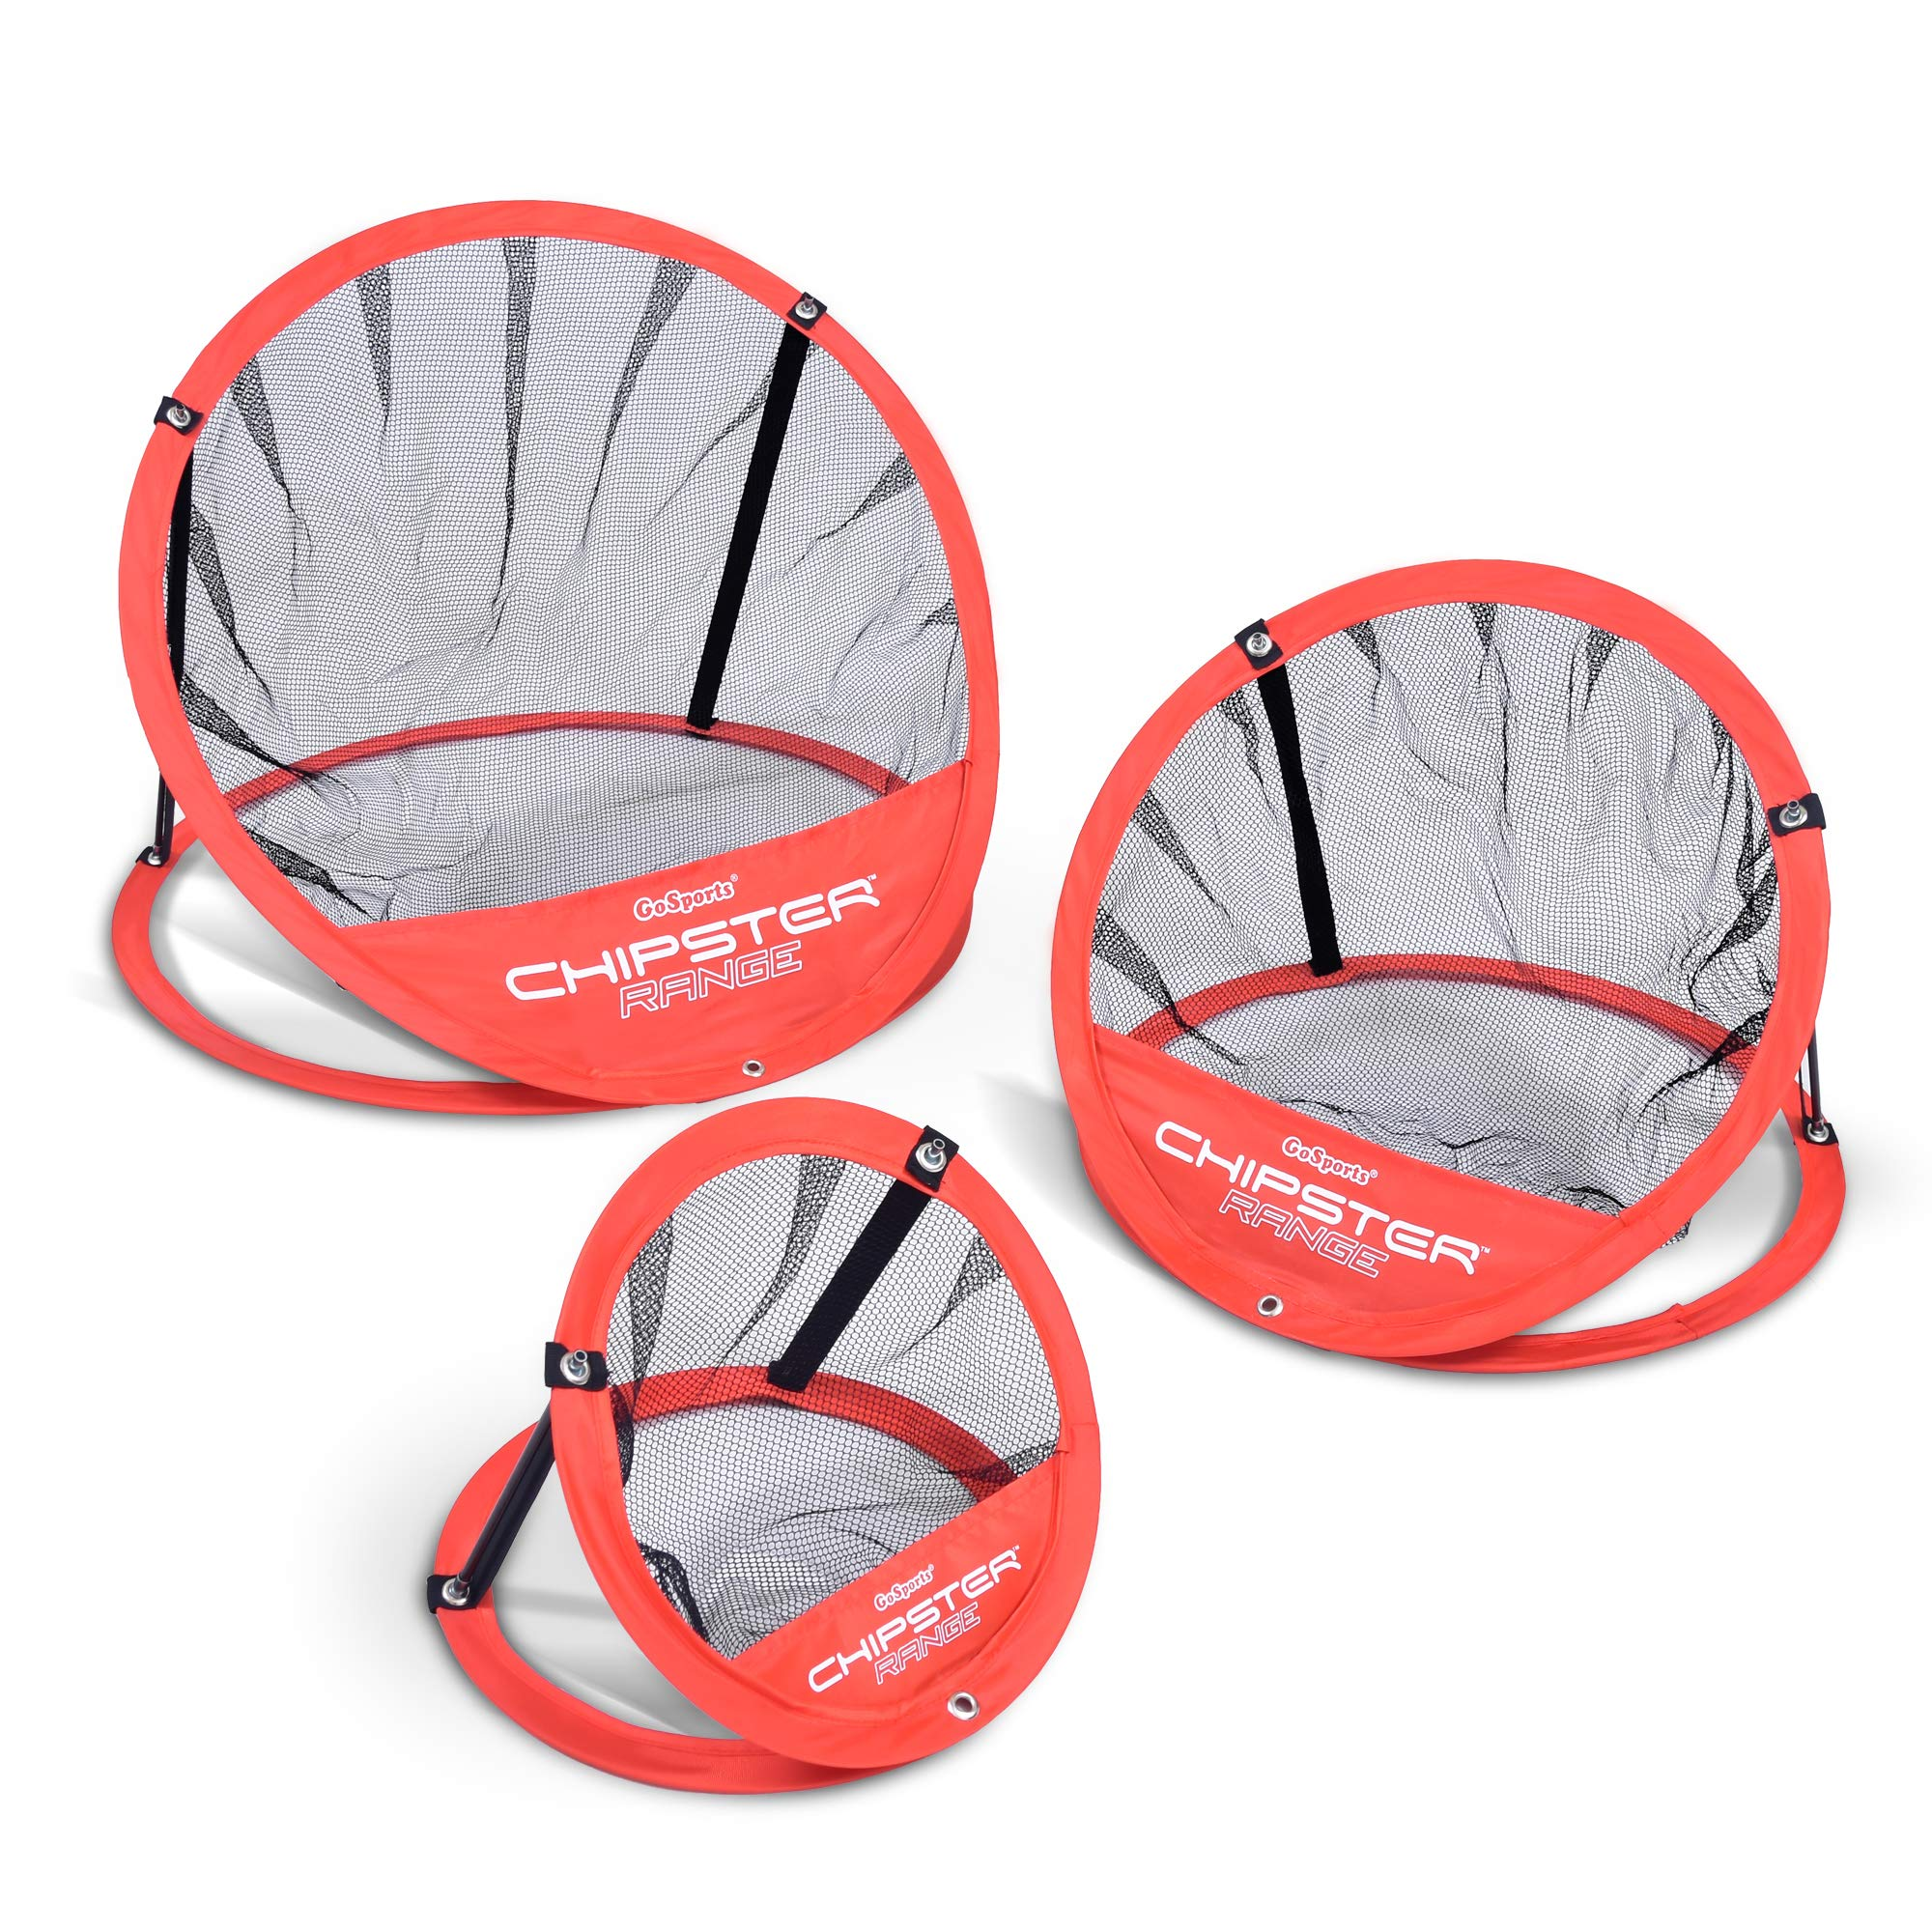 GoSports CHIPSTER Range - 3 Piece Golf Chipping Practice Net Target System with Carrying Case by GoSports